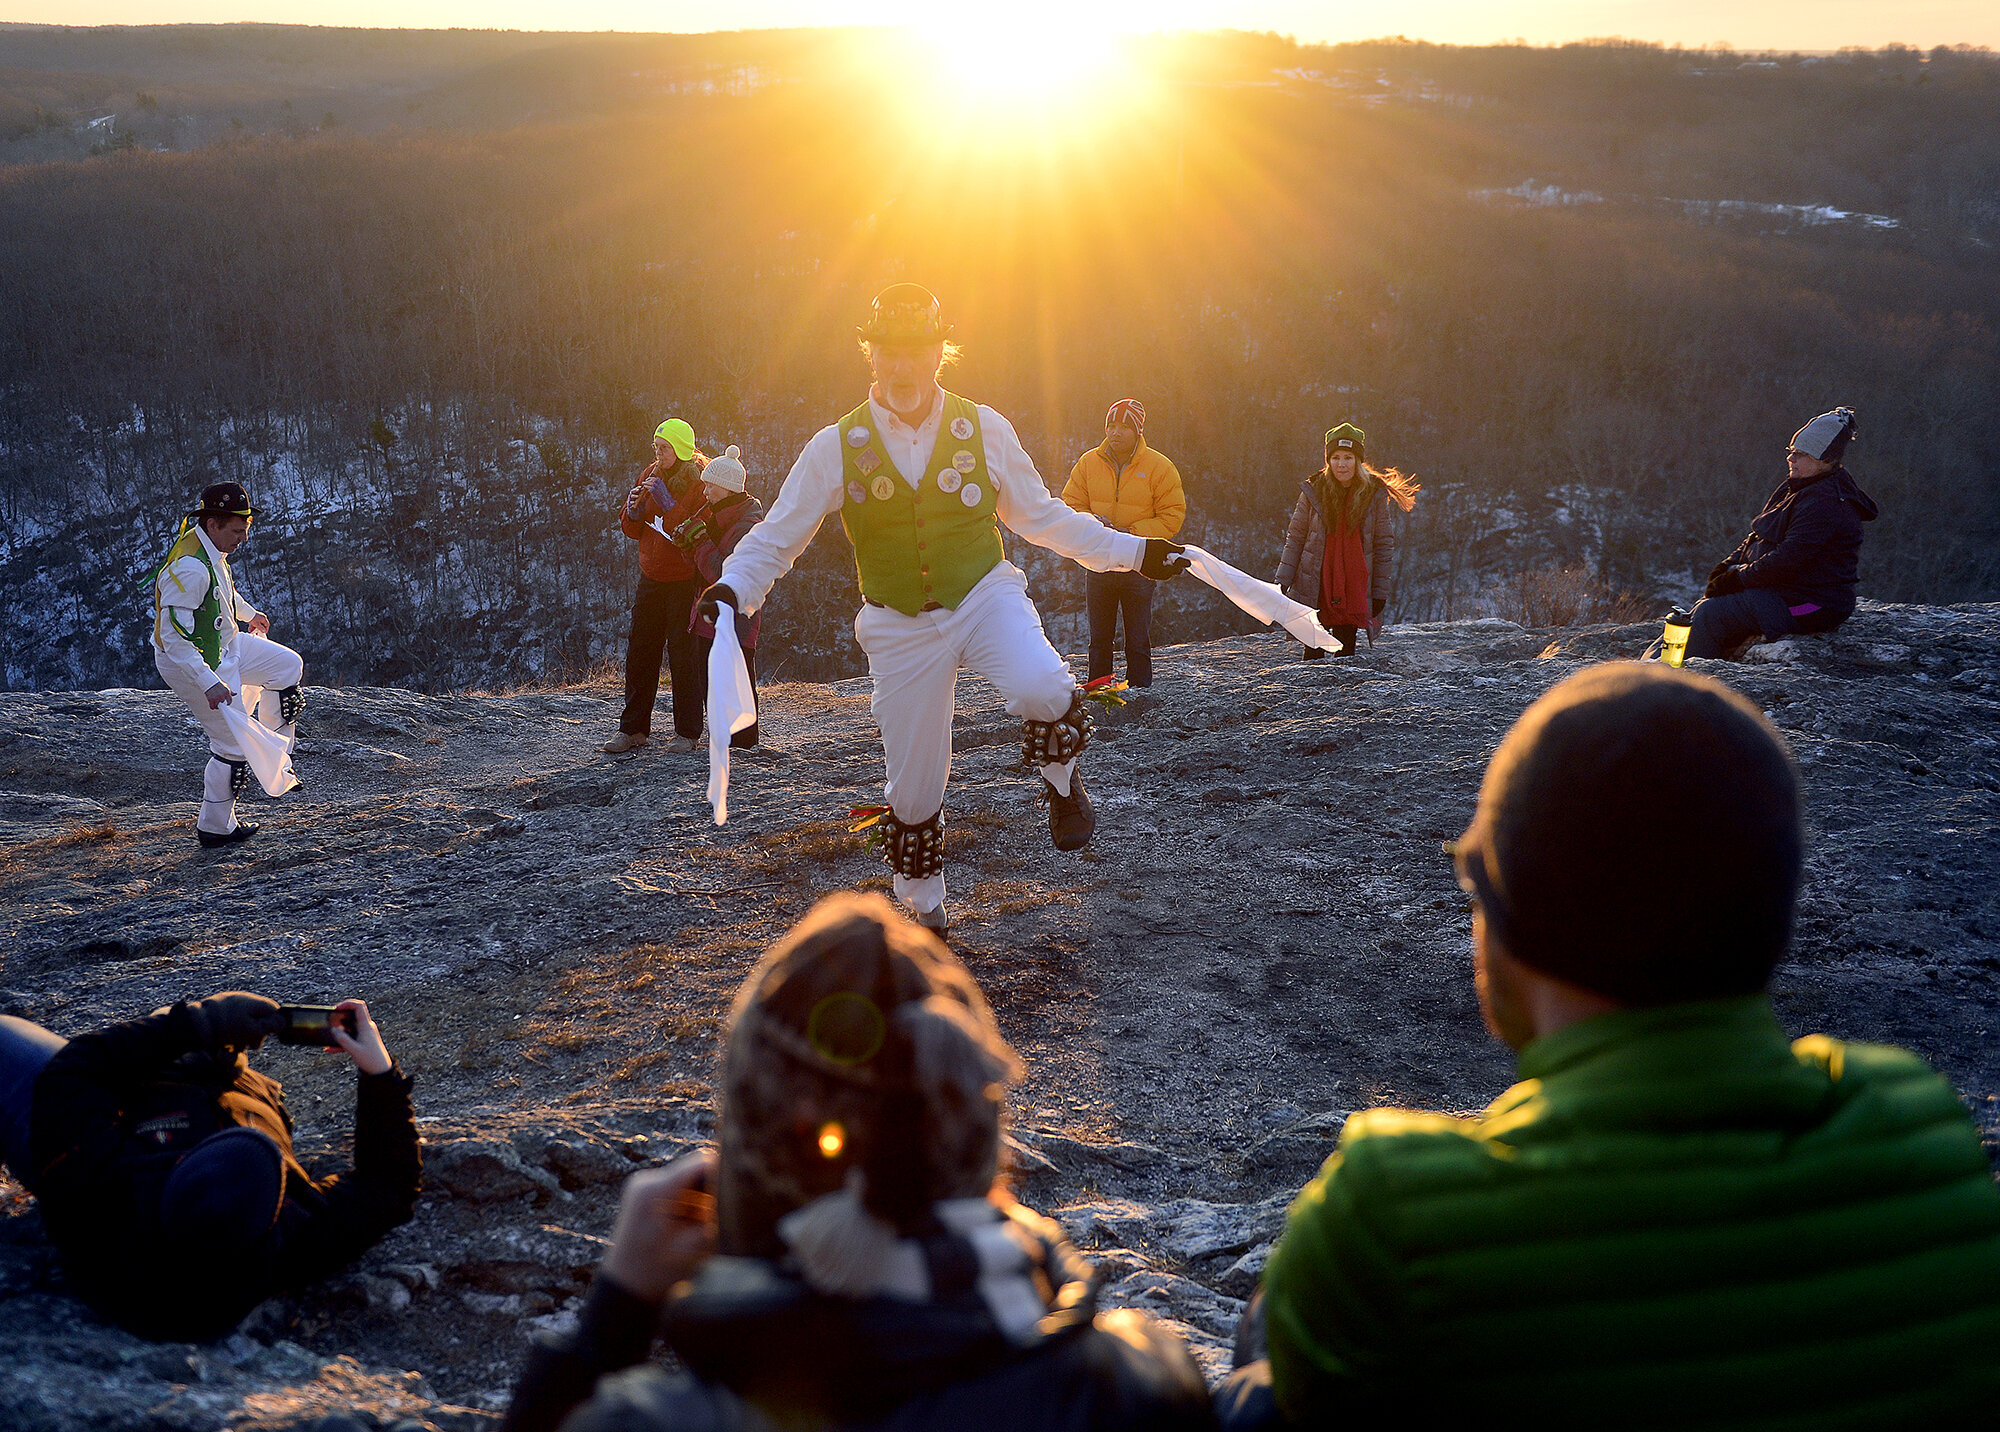 Spectators watch as the Westerly Morris Men mark the sunrise of the first day of spring on Tuesday, March 20, 2018, on top of Lantern Hill in North Stonington. The a traditional English ritual dancing group was founded over 40 years ago and has been performing the rite of spring dances for over 30 years. (The Day)